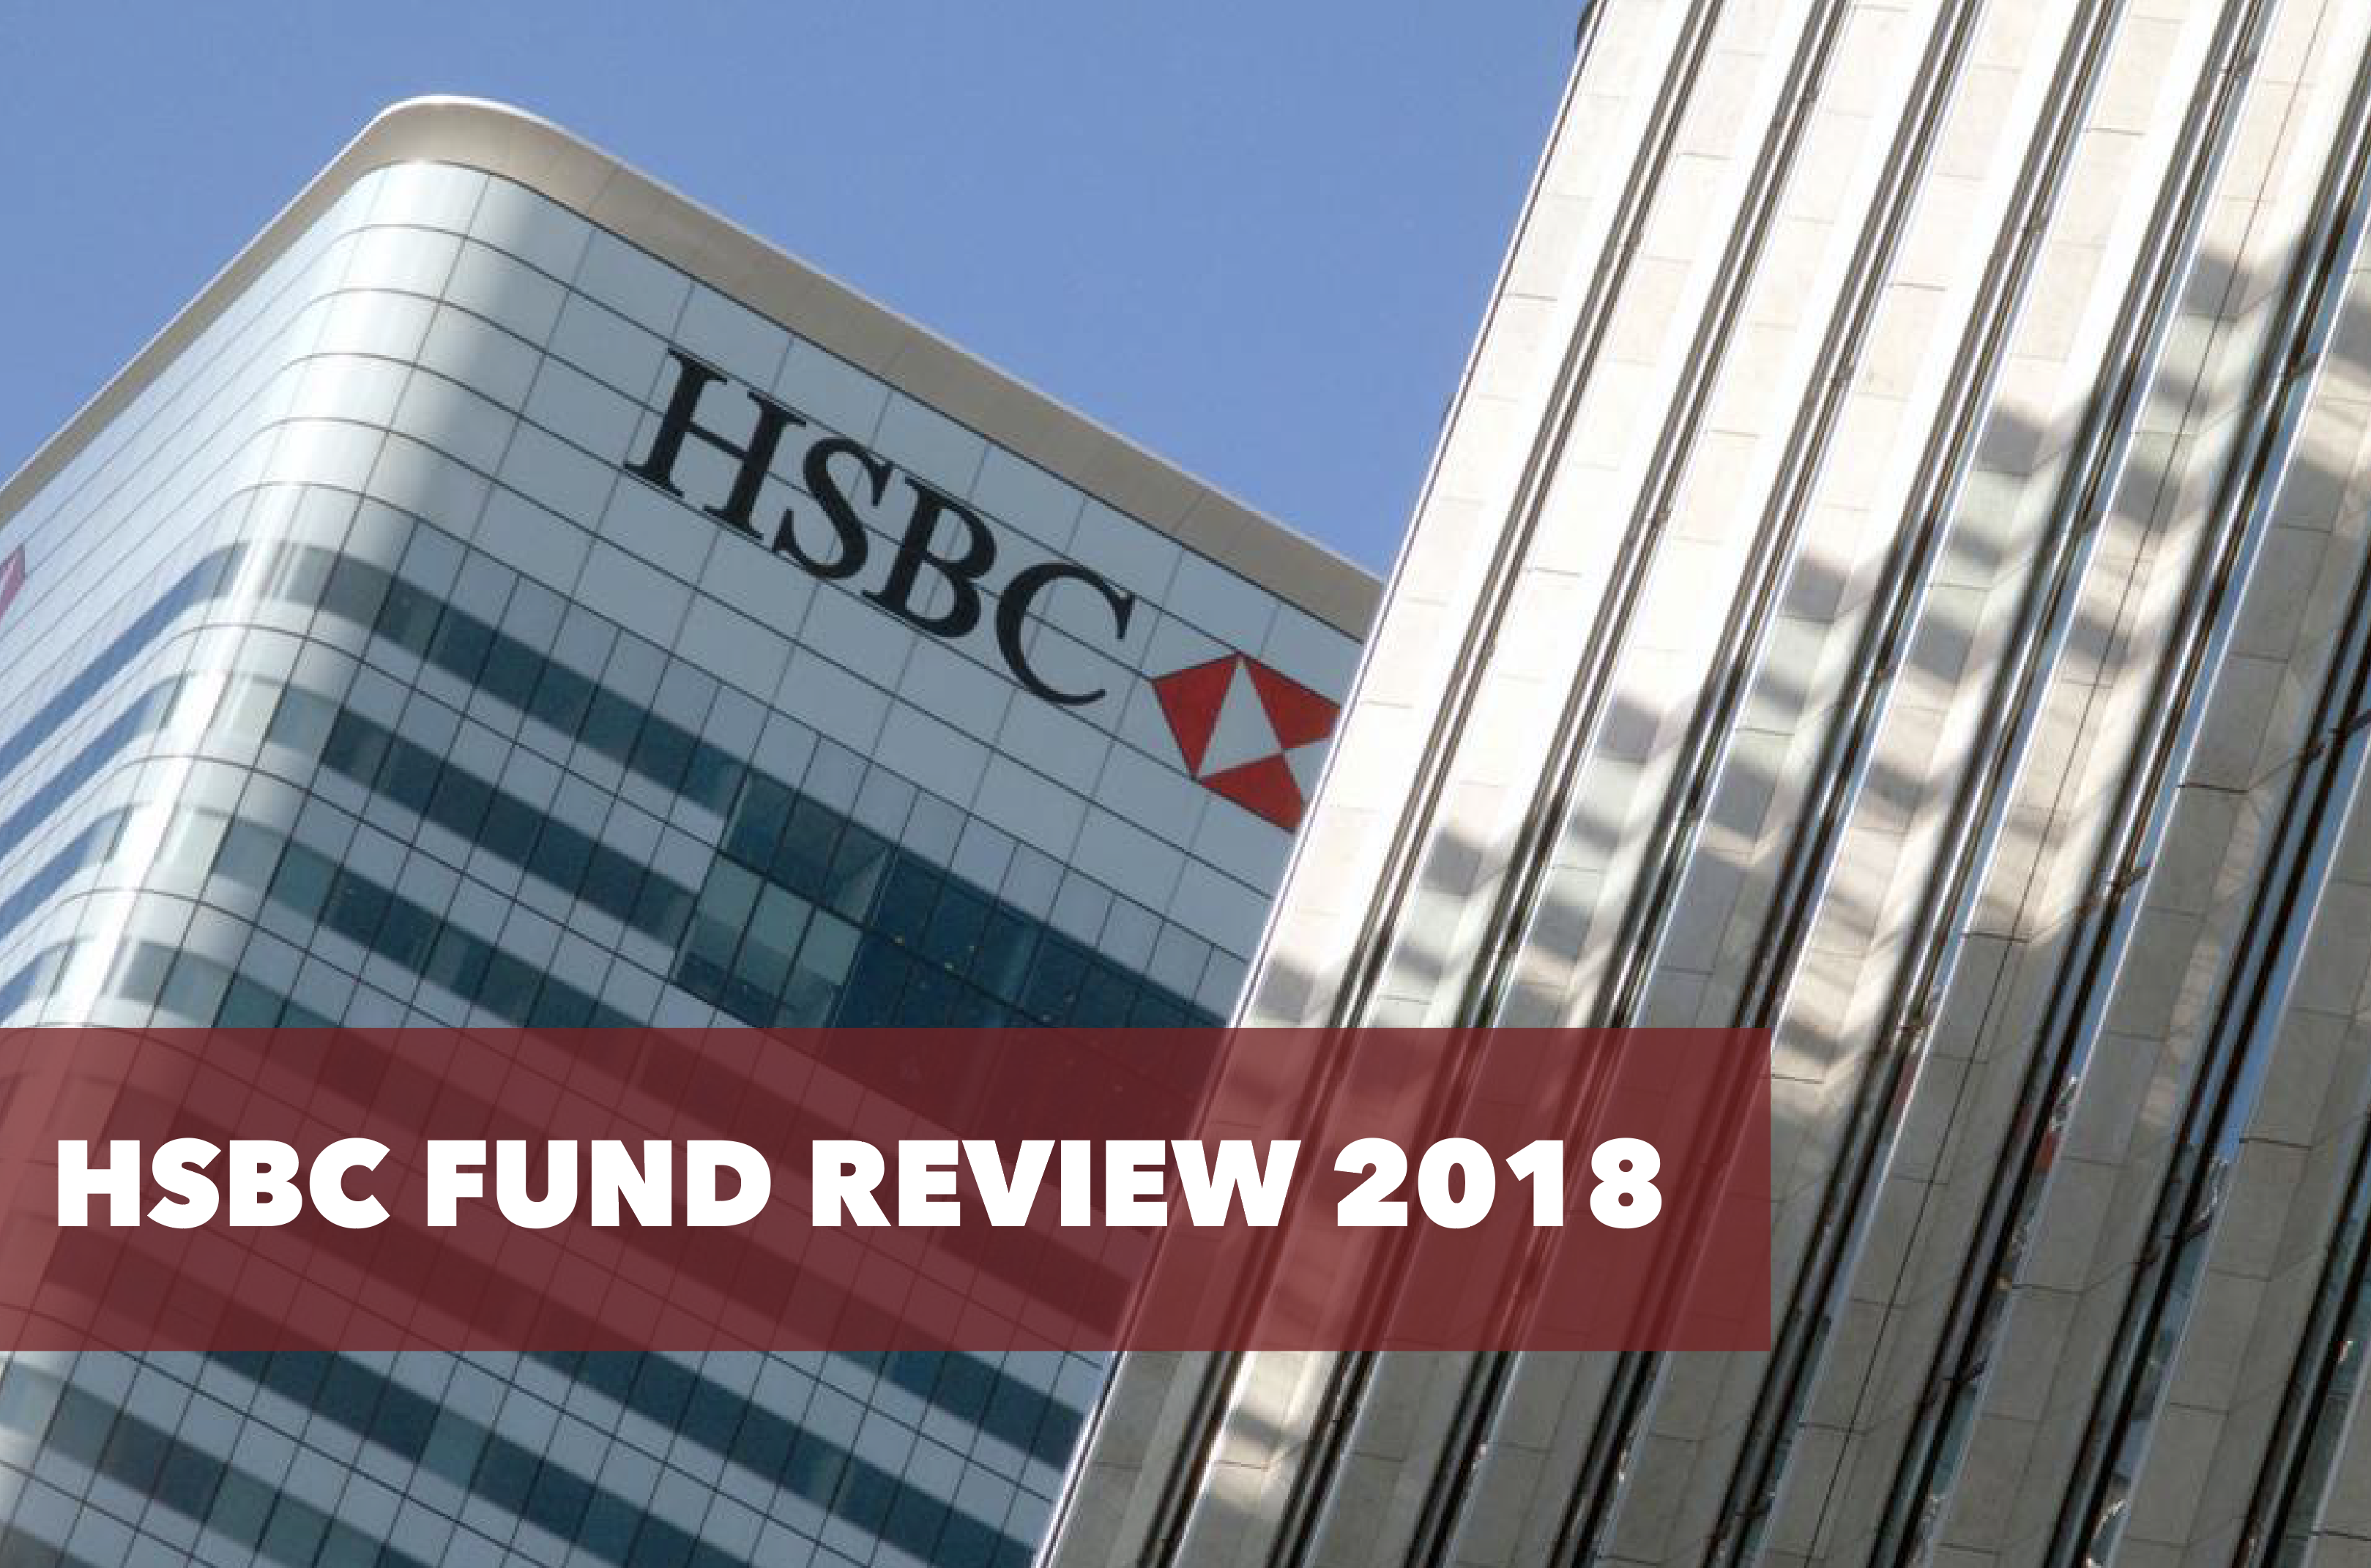 HSBC Fund Review 2018